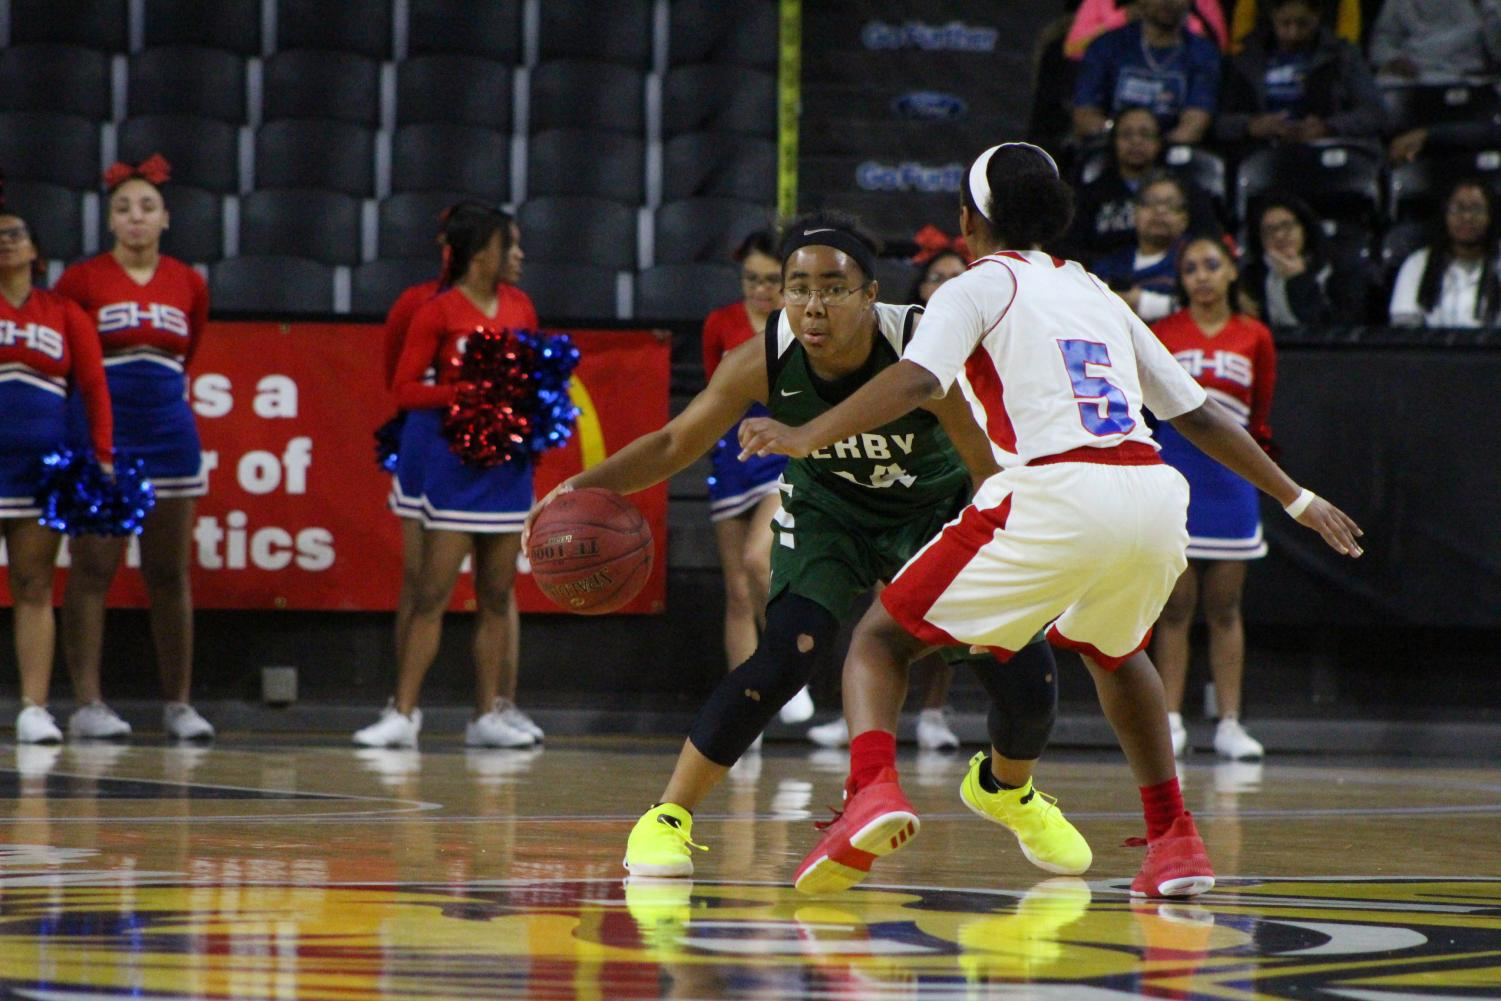 Junior Tor'e Alford switches up her dribble, tricking her opponent.